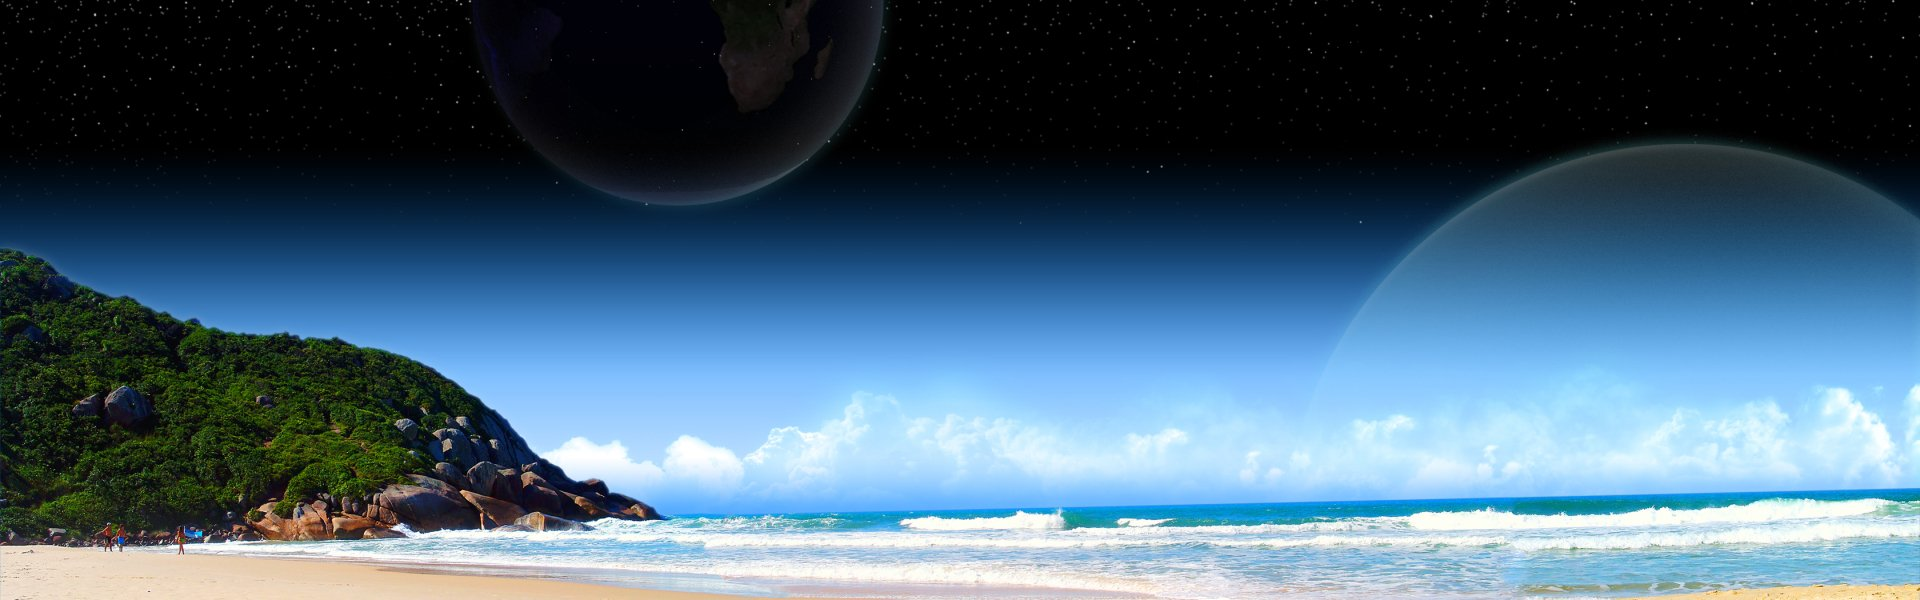 Multi Monitor - Earth  Sky Moon Bay Ocean Beach Summer Water Fantasy Wallpaper